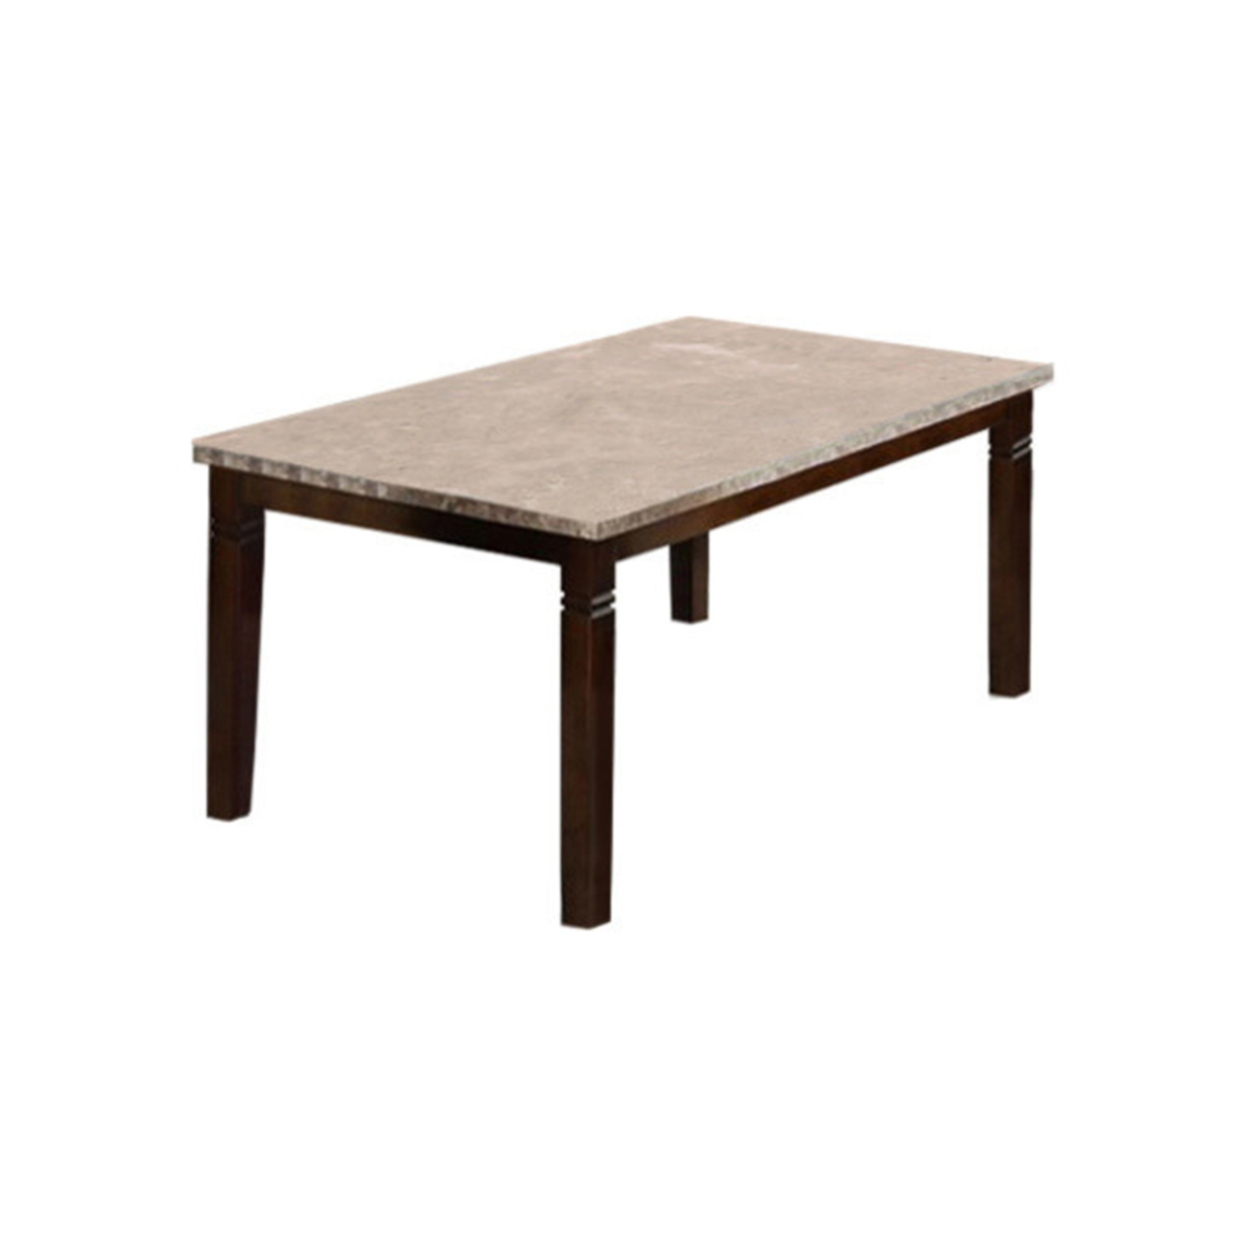 Marstone Contemporary Style Marble Top Dining Table, Brown Cherry Finish